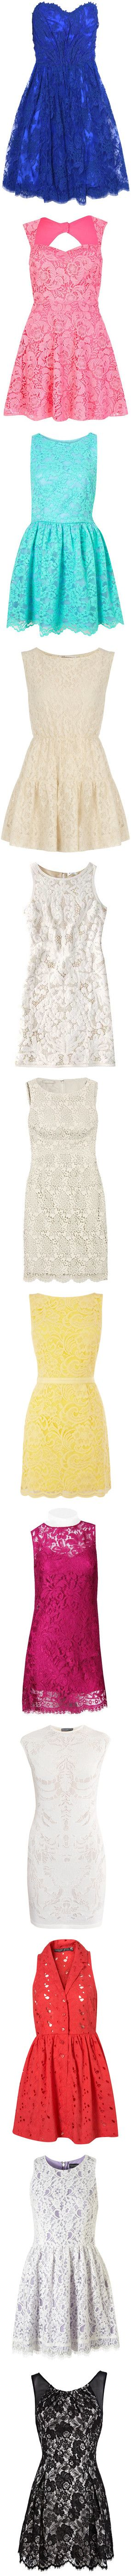 Want lace